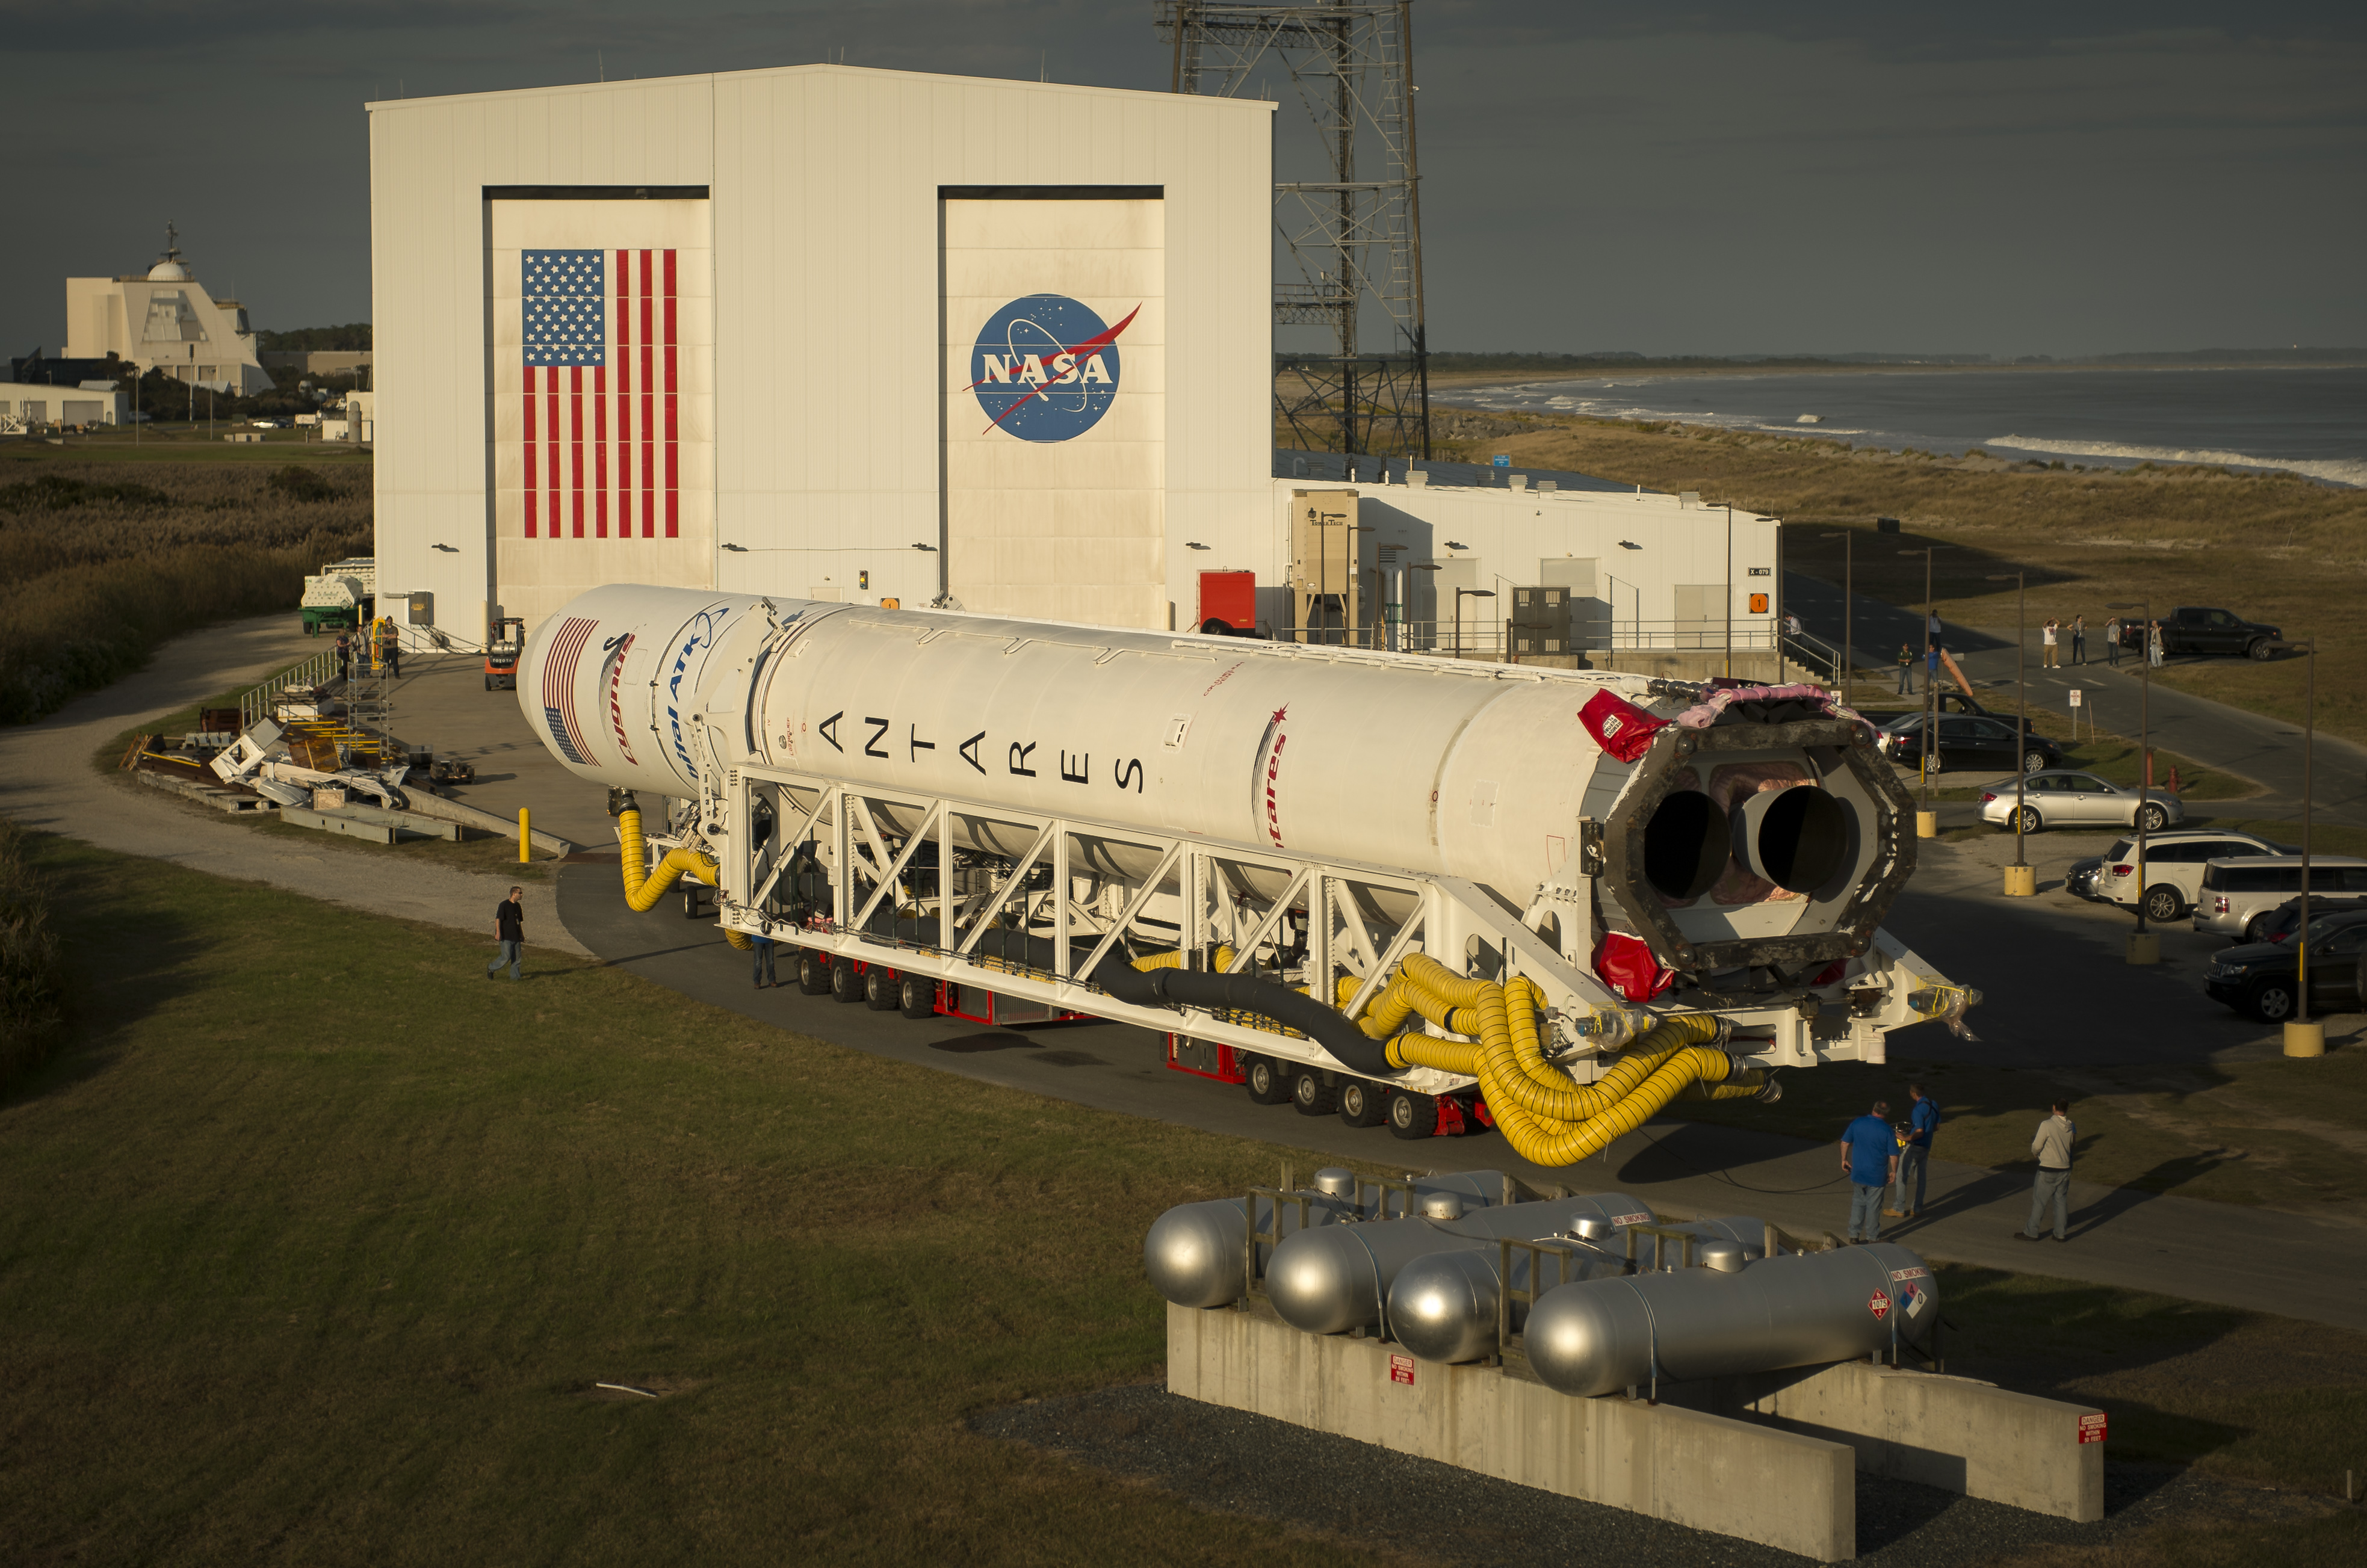 The Orbital ATK Antares rocket with the